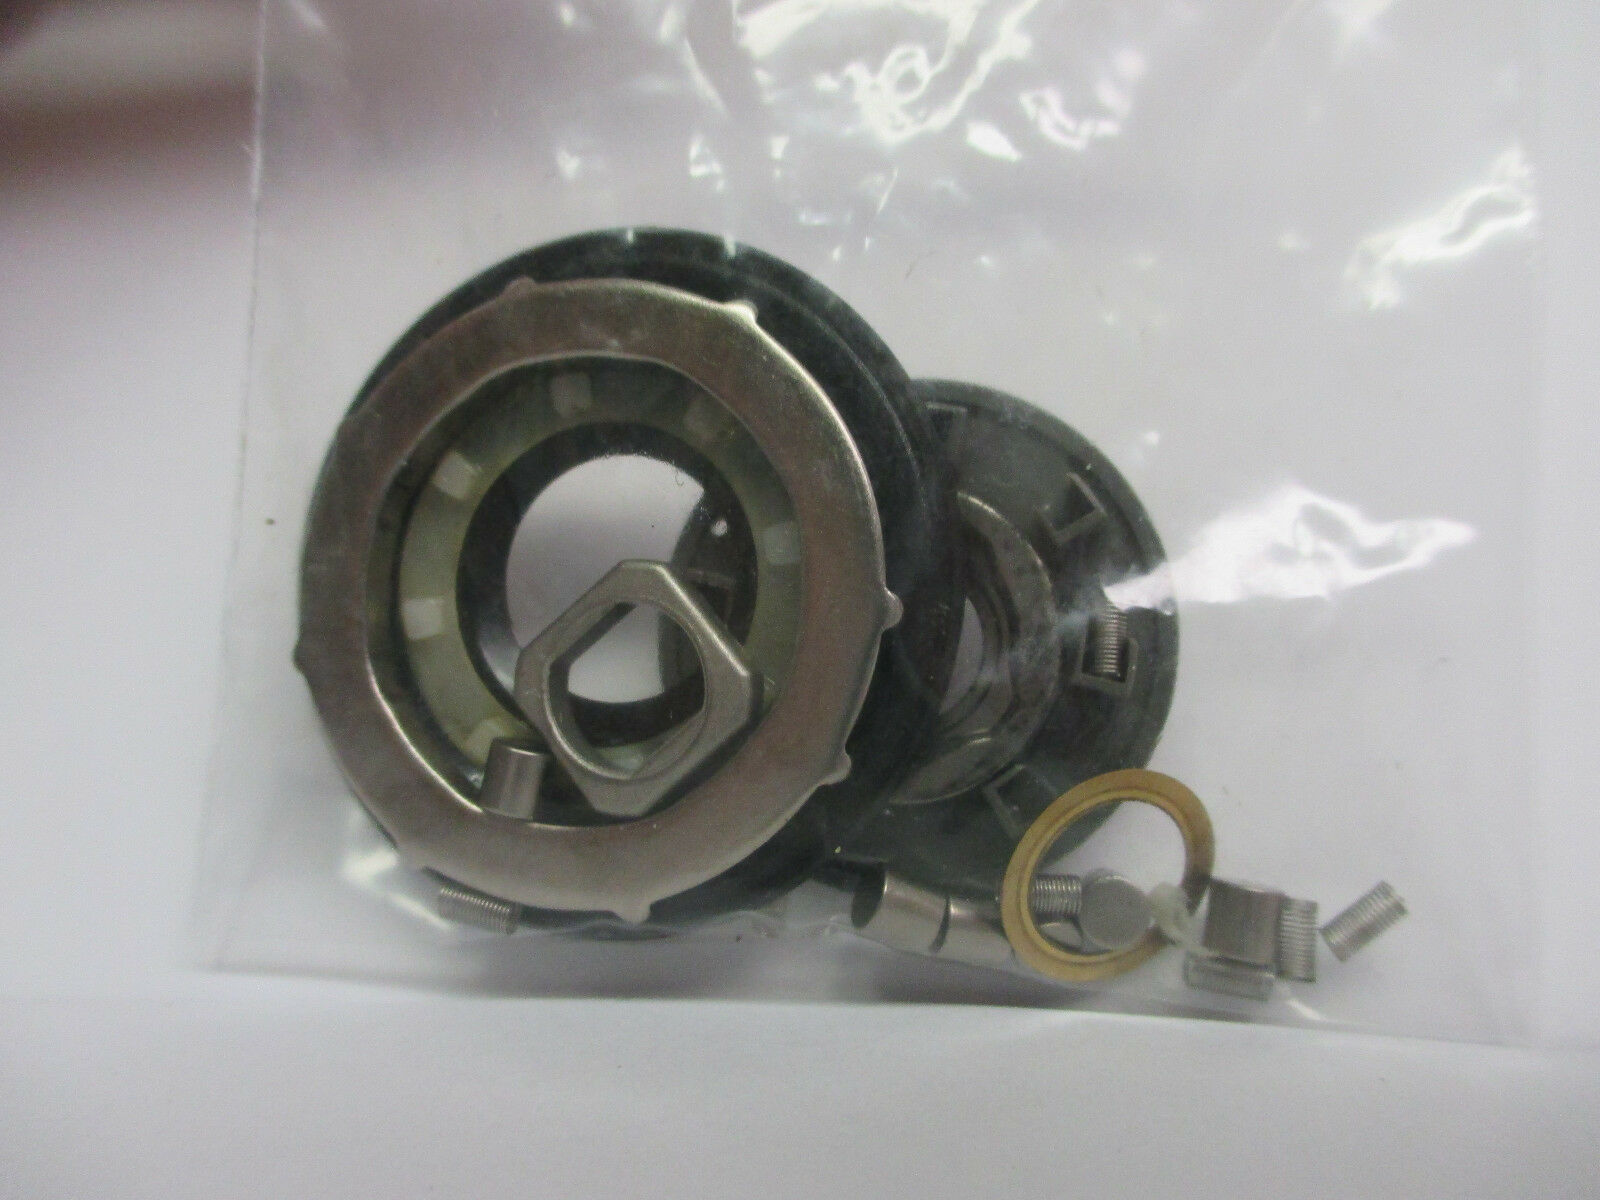 USED SHIMANO SPINNING REEL PART - Stella 6000FA - Roller Clutch Assembly